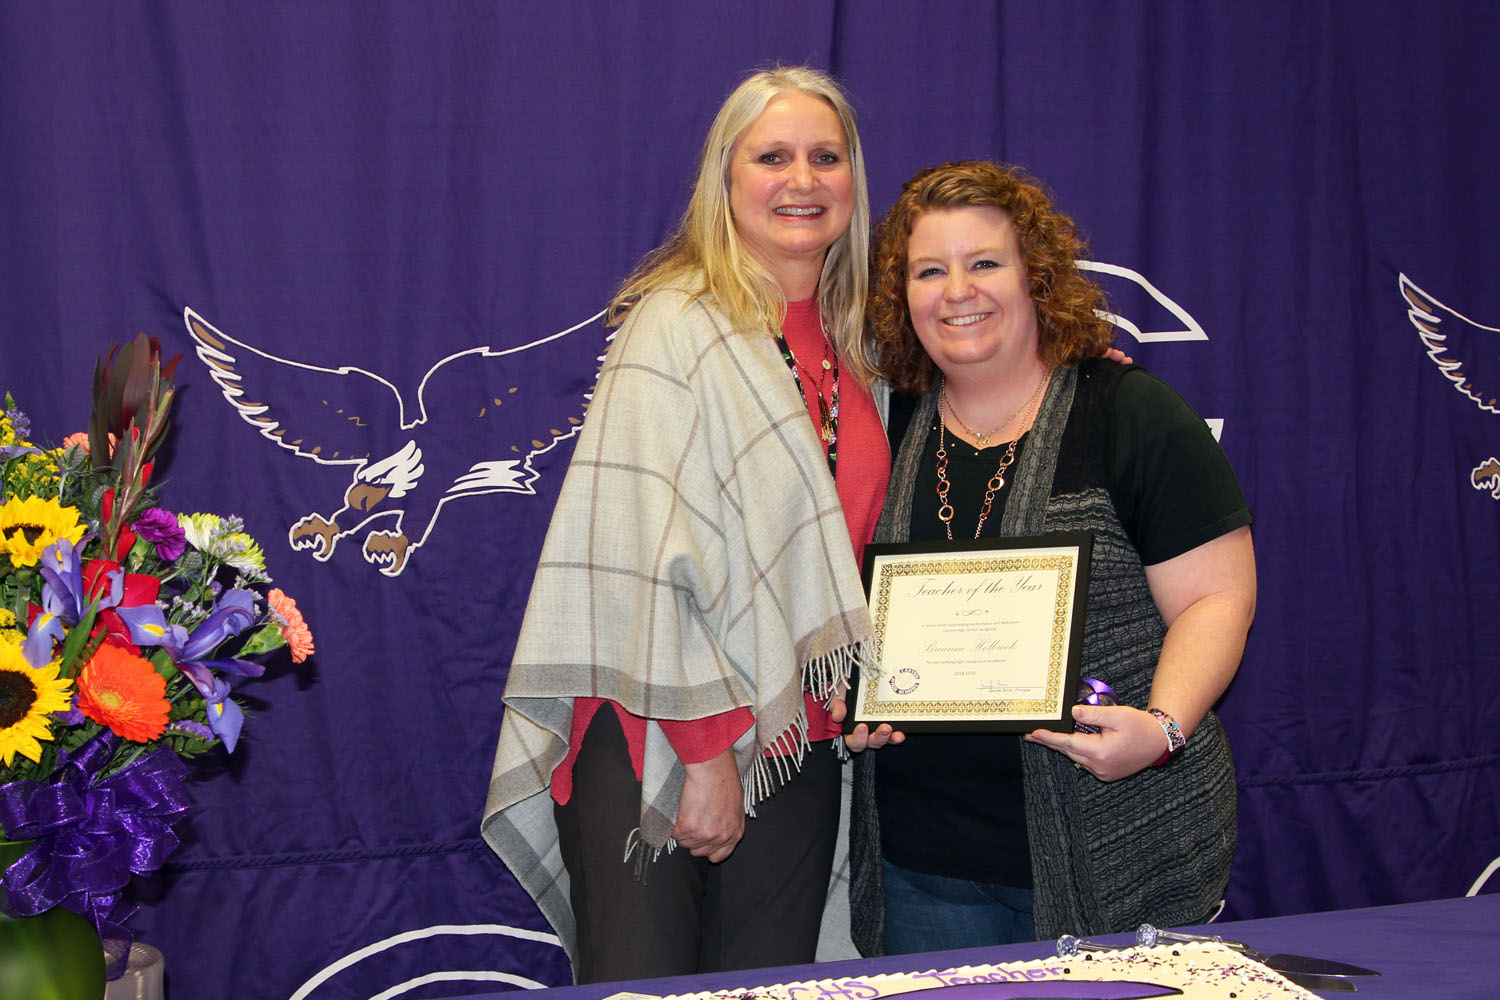 Principal Jennifer Boren presents the Teacher of the Year certificate to special education teacher Breanne Holbrook.